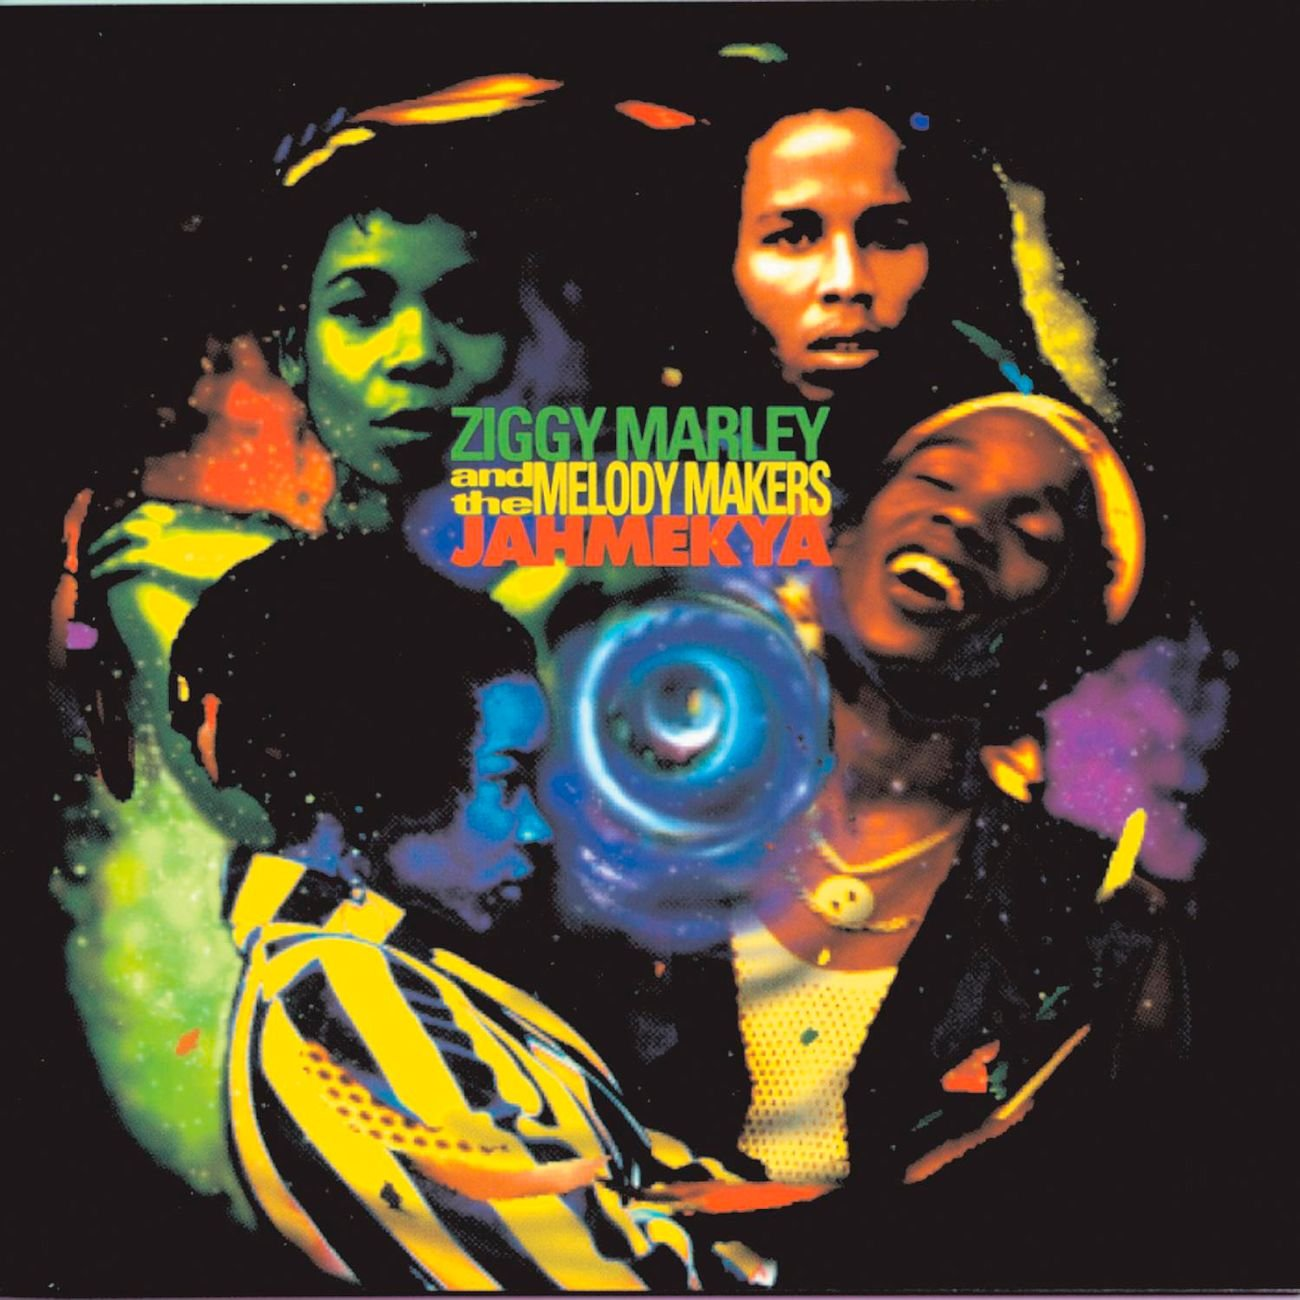 Ziggy marley brothers and sisters download